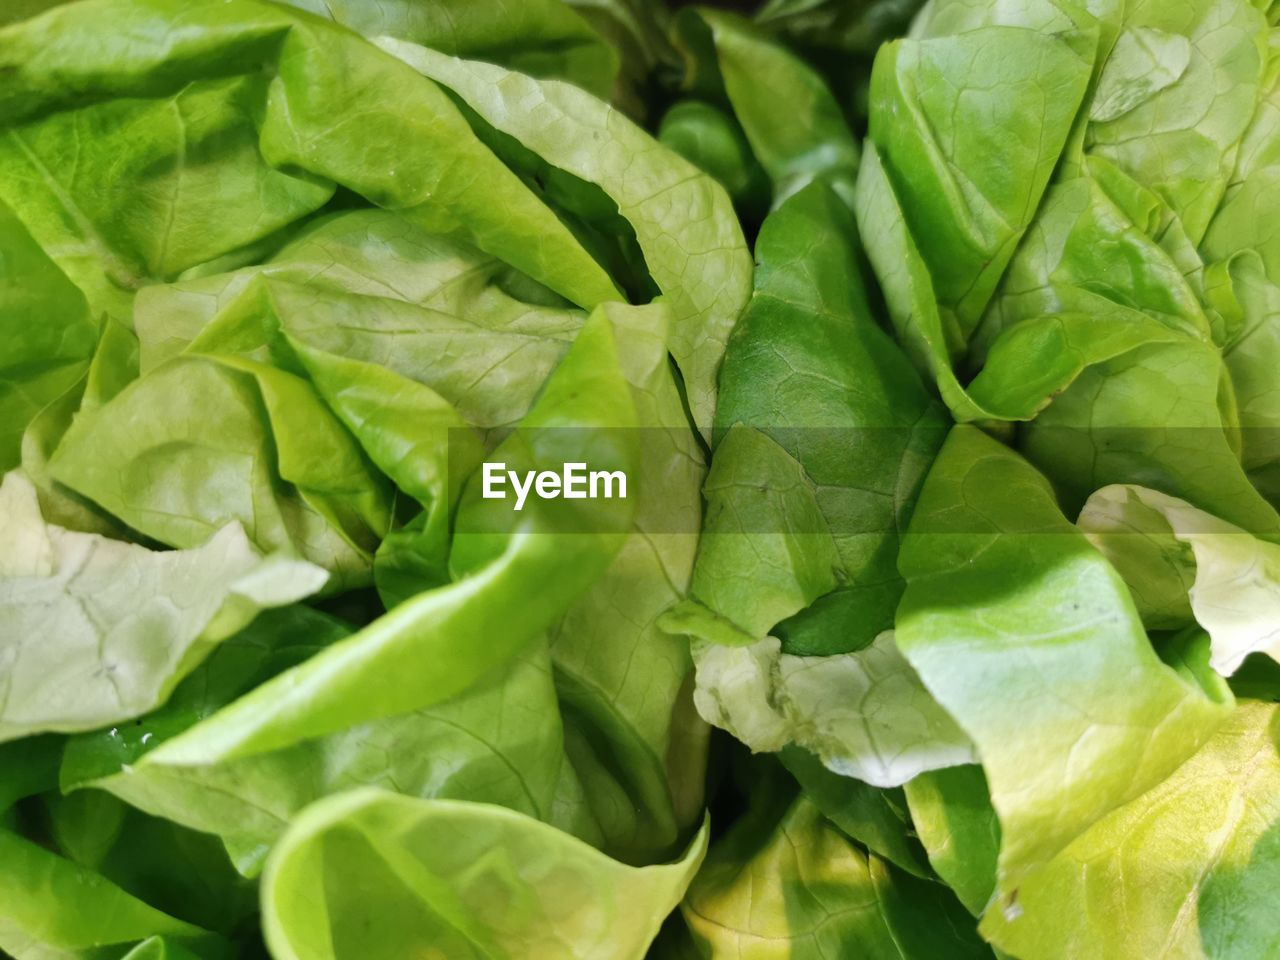 plant part, leaf, green color, food and drink, vegetable, food, healthy eating, close-up, wellbeing, full frame, freshness, no people, backgrounds, raw food, nature, lettuce, plant, day, growth, leaf vegetable, leaves, vegetarian food